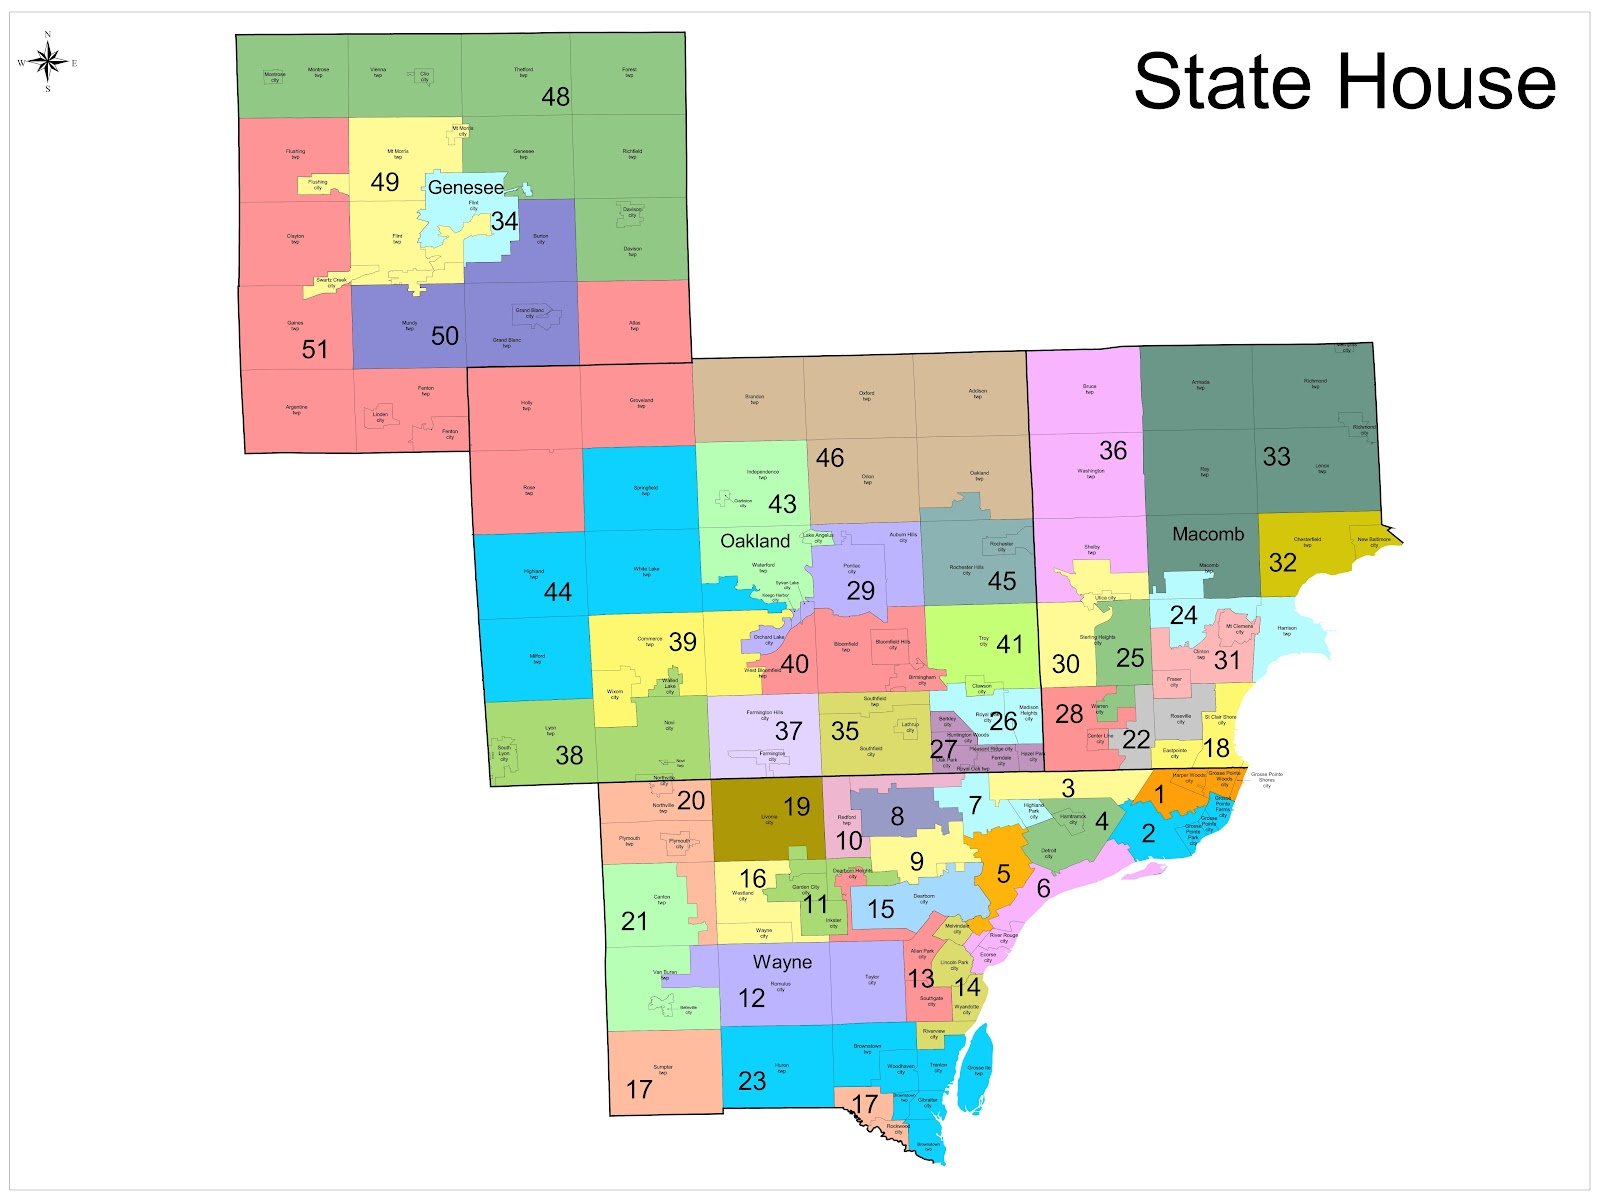 elections politics amp policy new district maps us house of representatives district map michigan